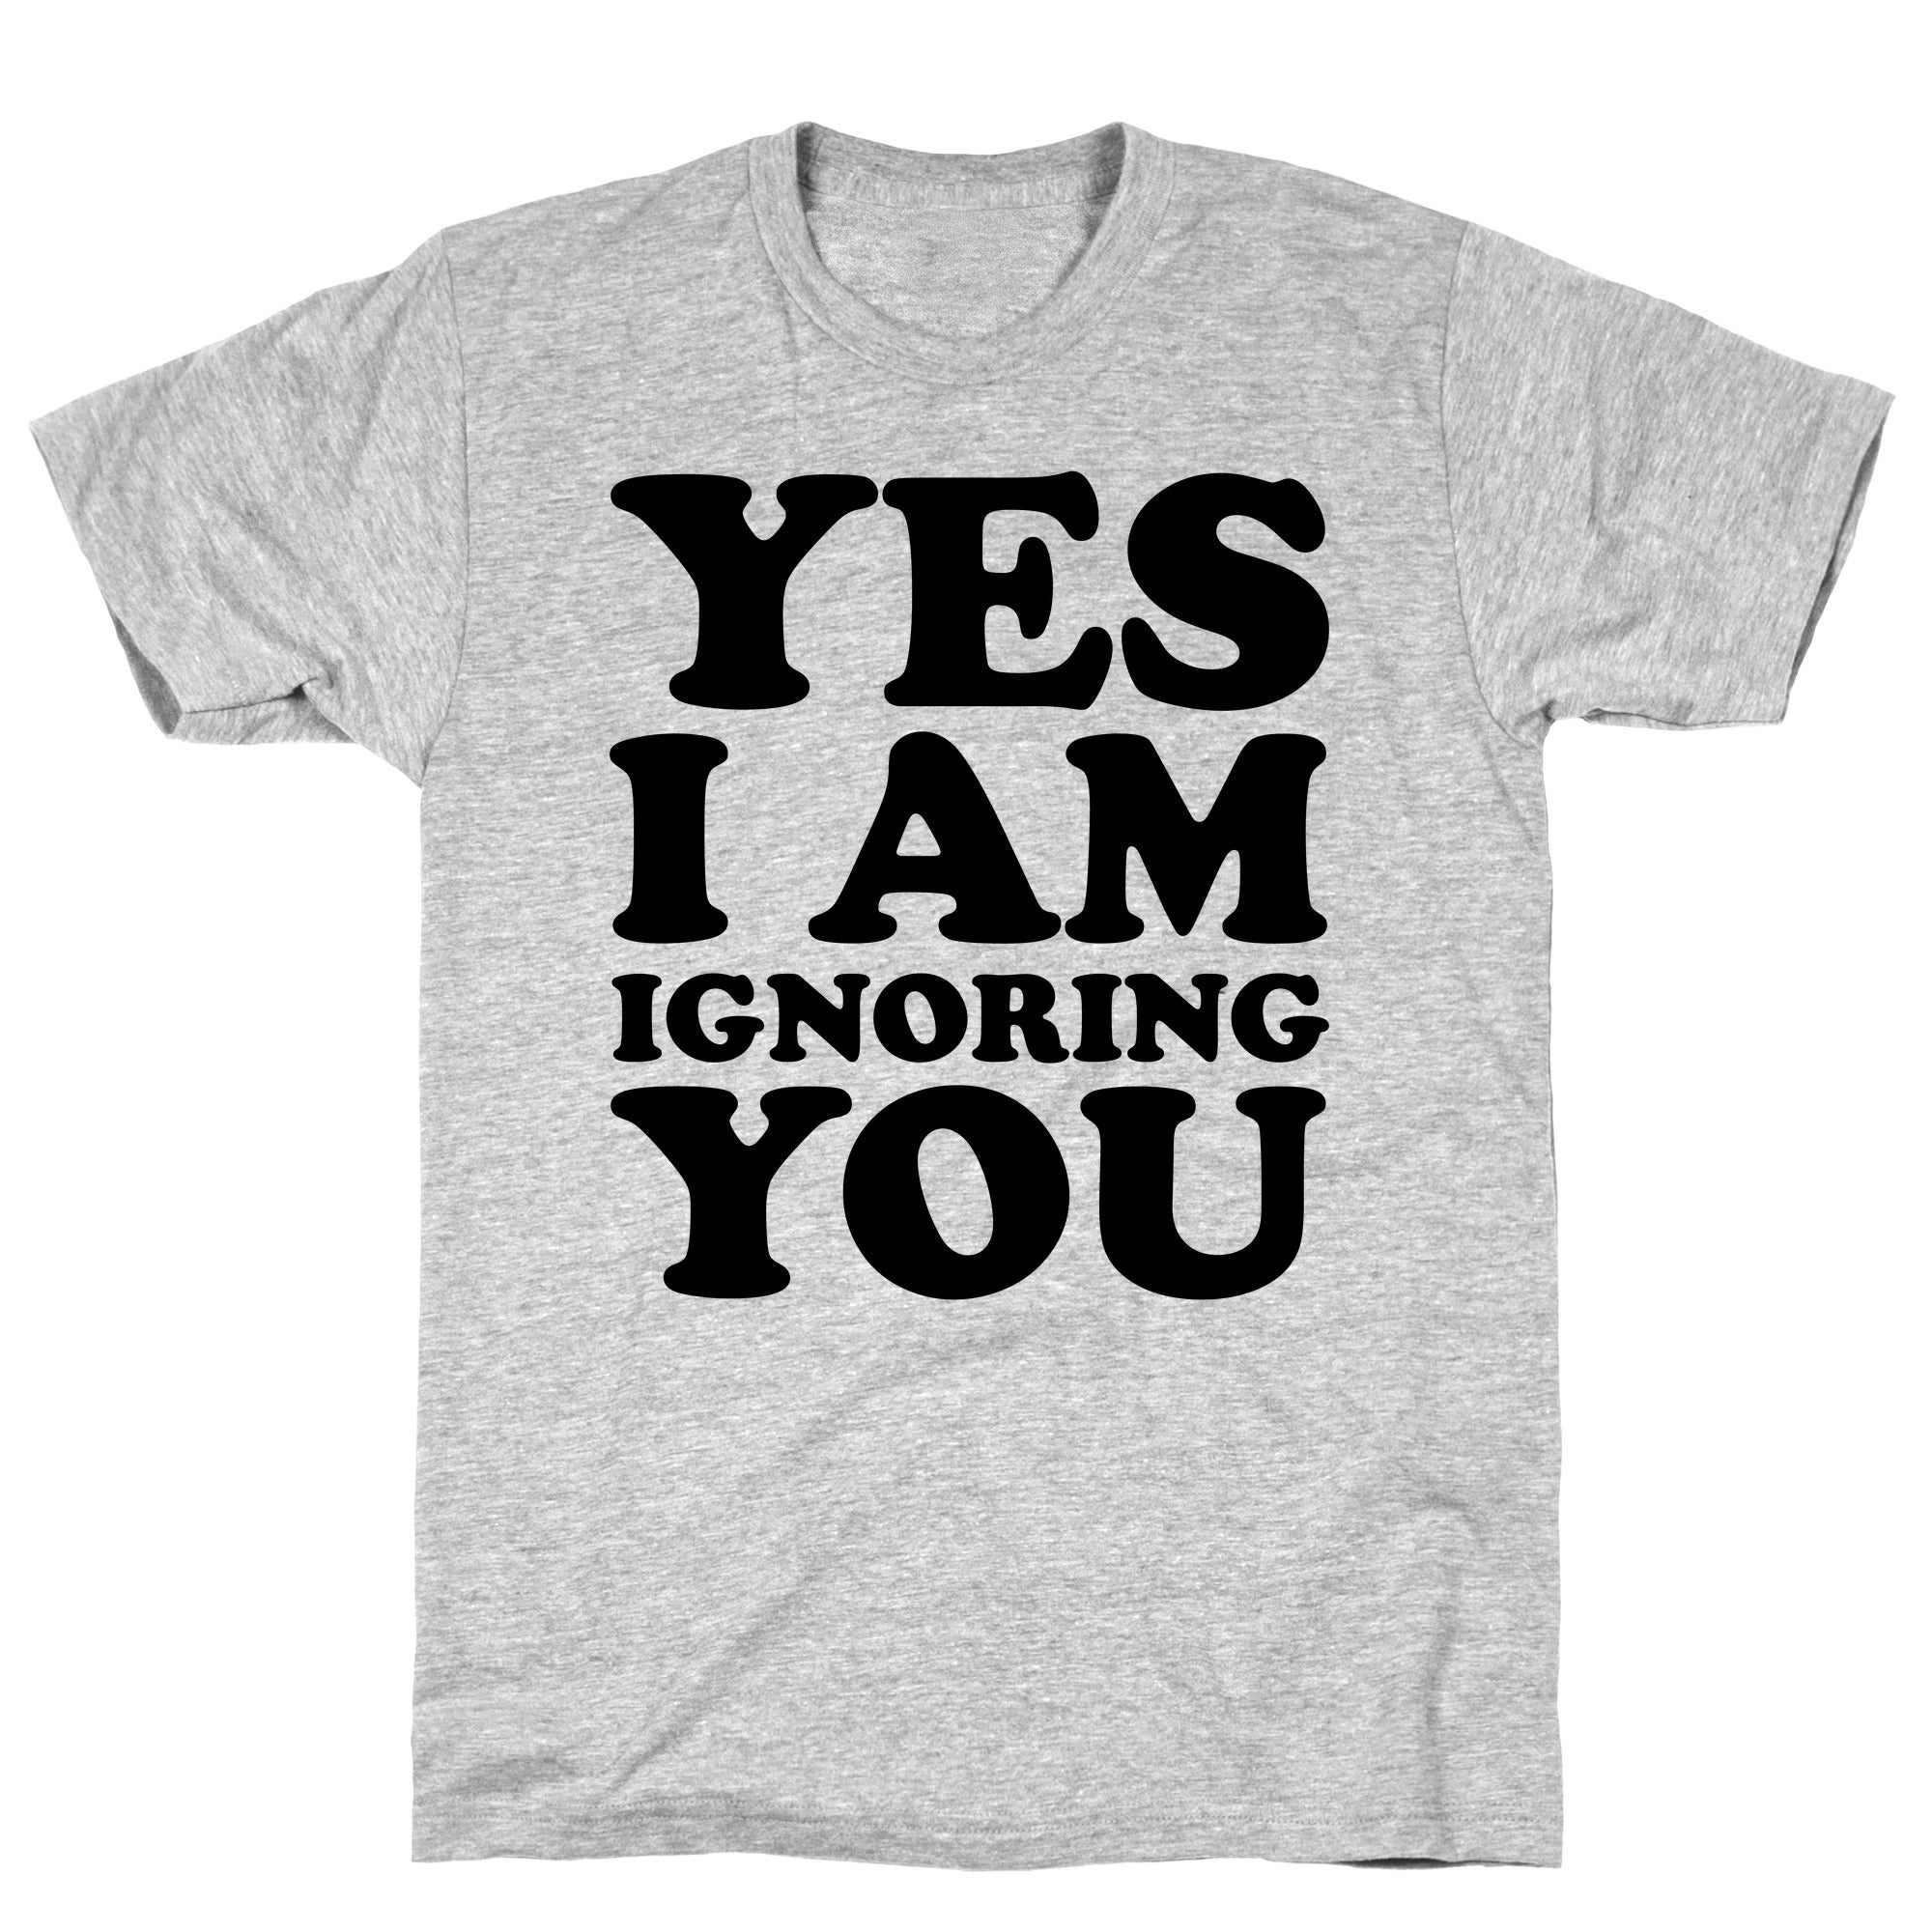 92e422bc4 Shop Yes I Am Ignoring You Athletic Gray Men's Cotton Tee by LookHUMAN -  Free Shipping On Orders Over $45 - Overstock - 21262273